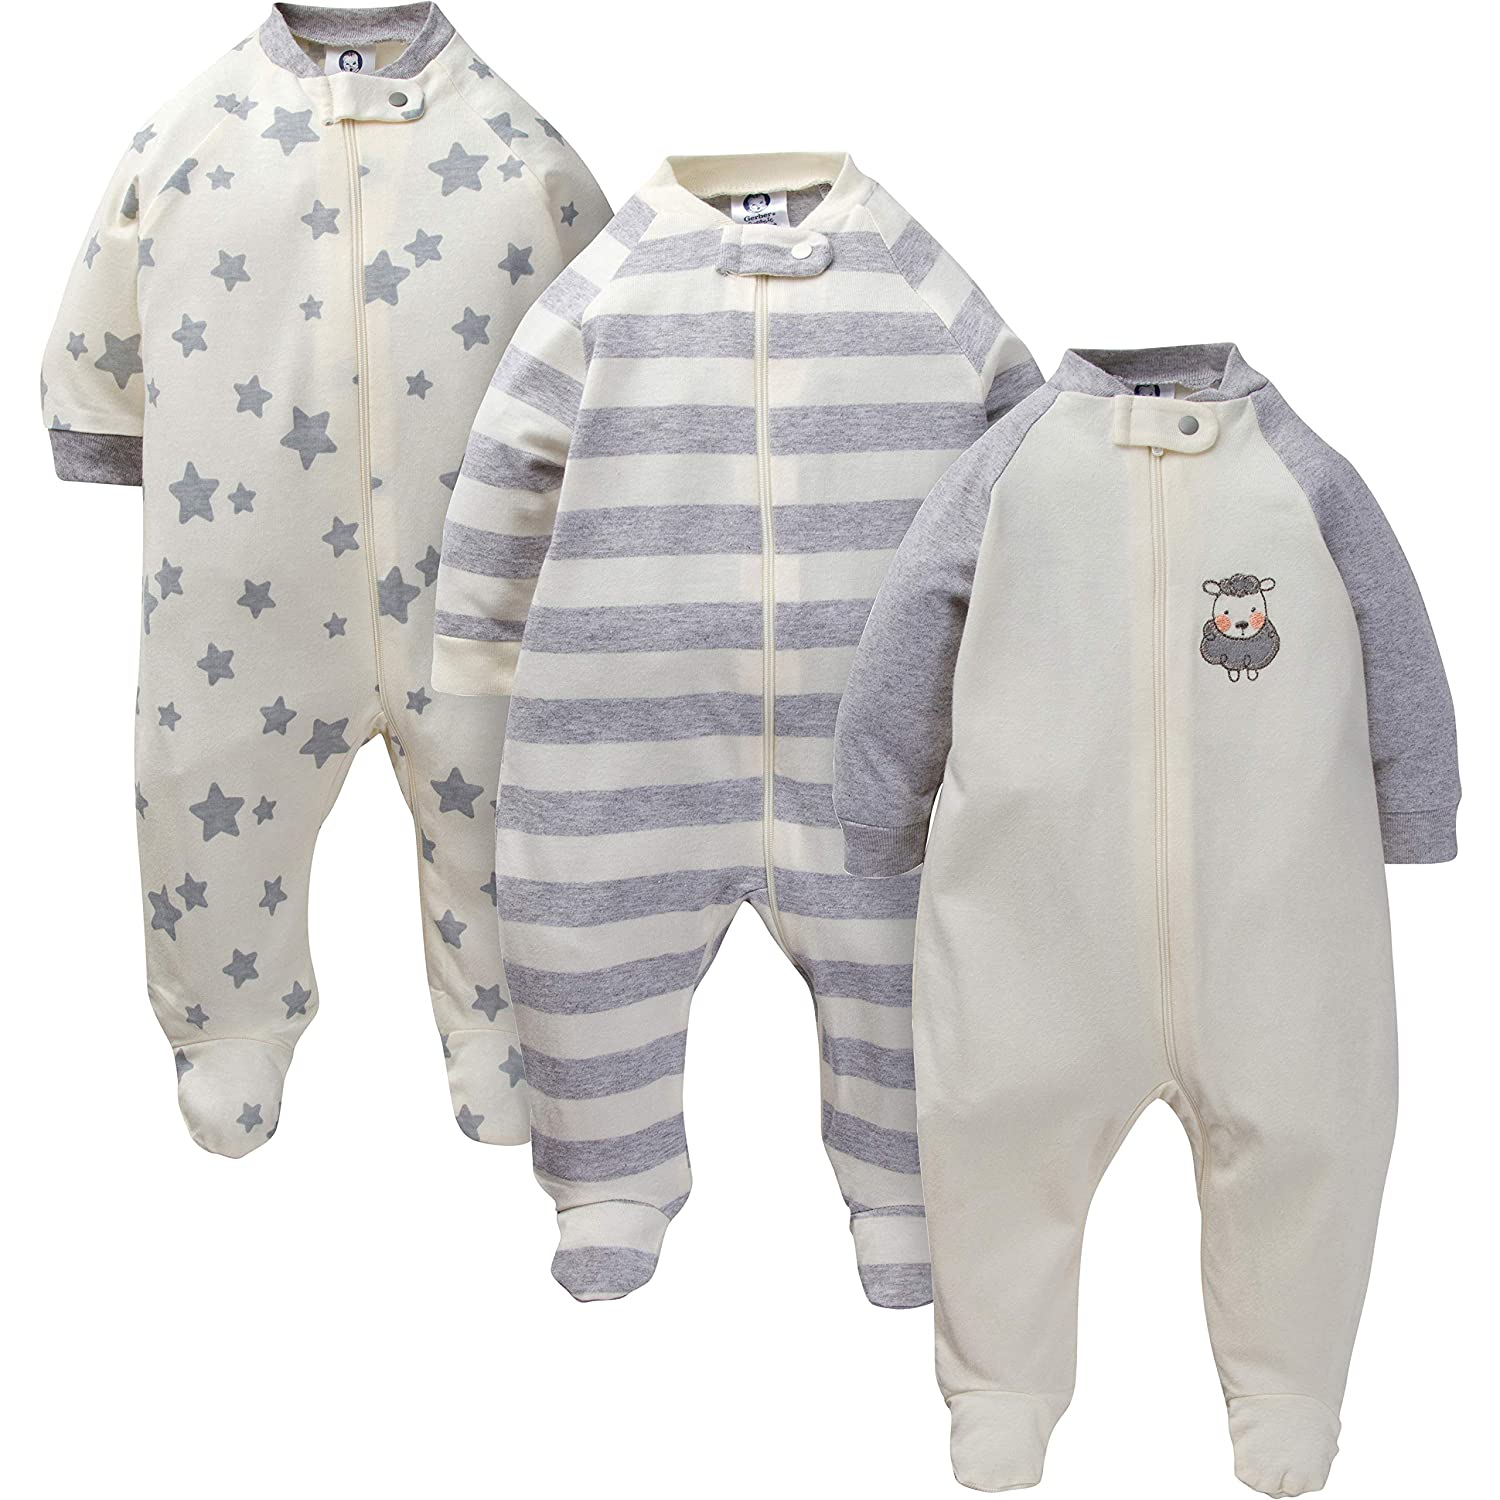 Gerber Baby 3-Pack Organic Sleep 'N Play